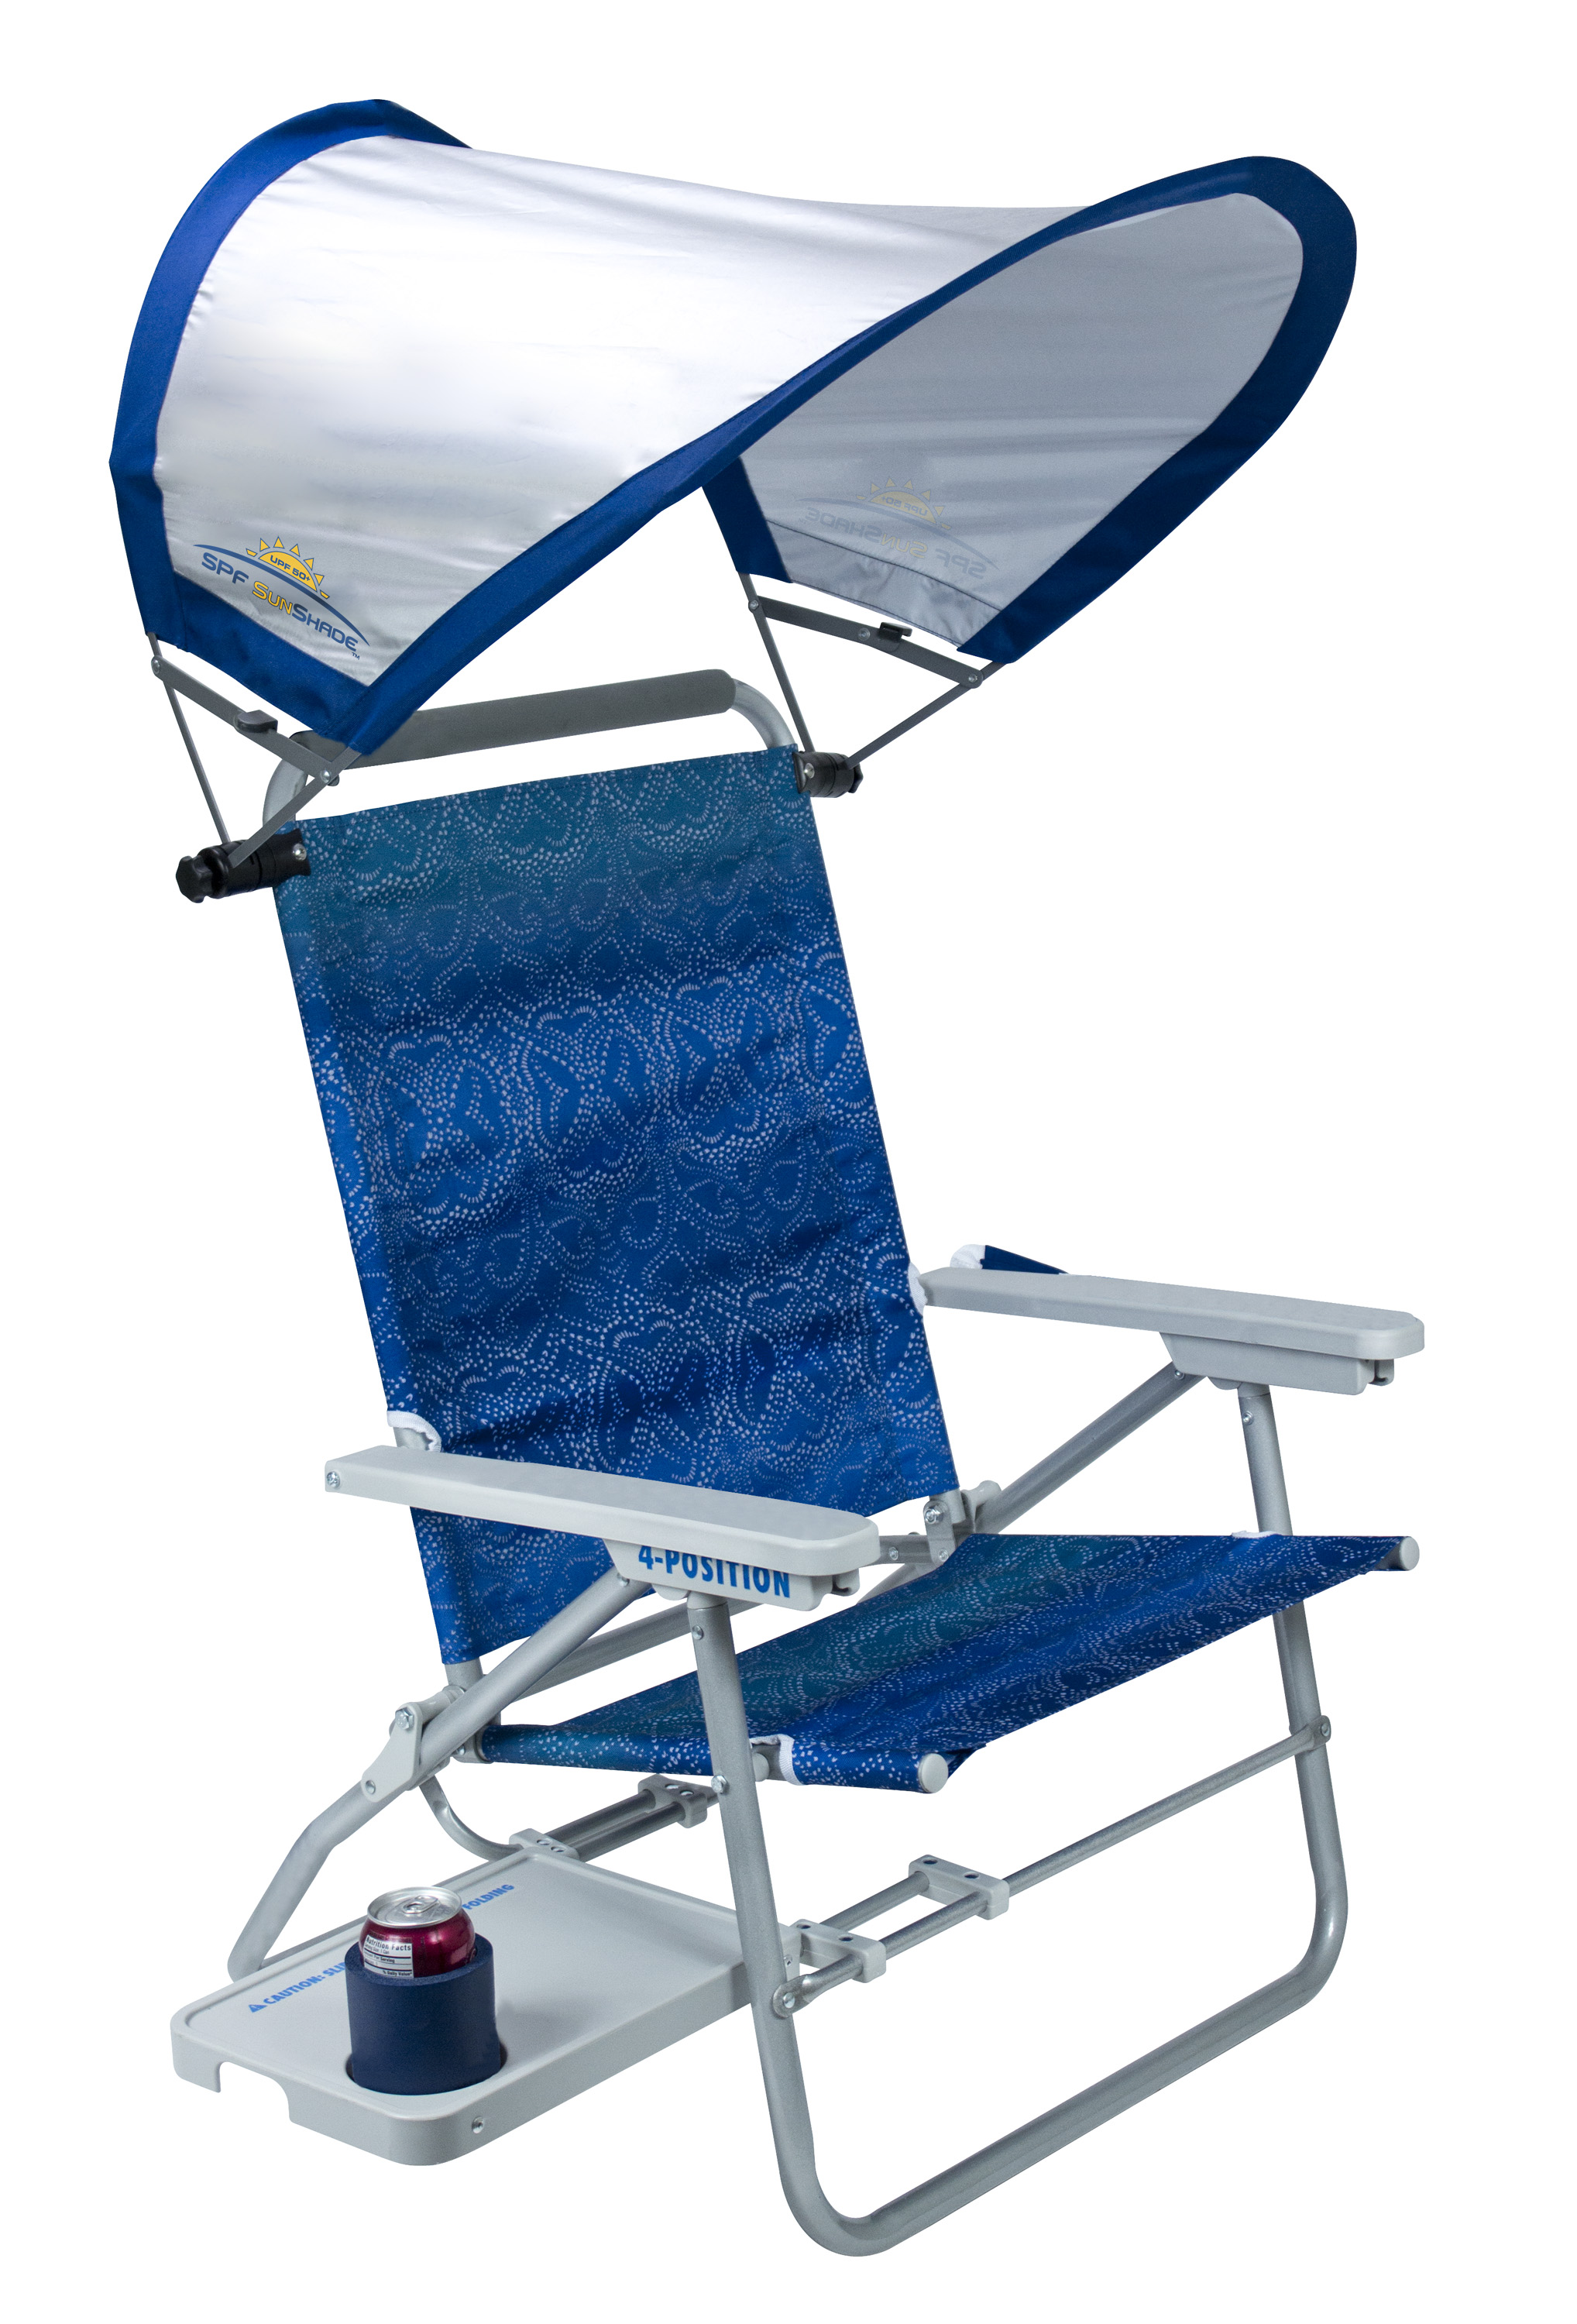 Big Surf with Slide Table & SunShade by GCI Waterside